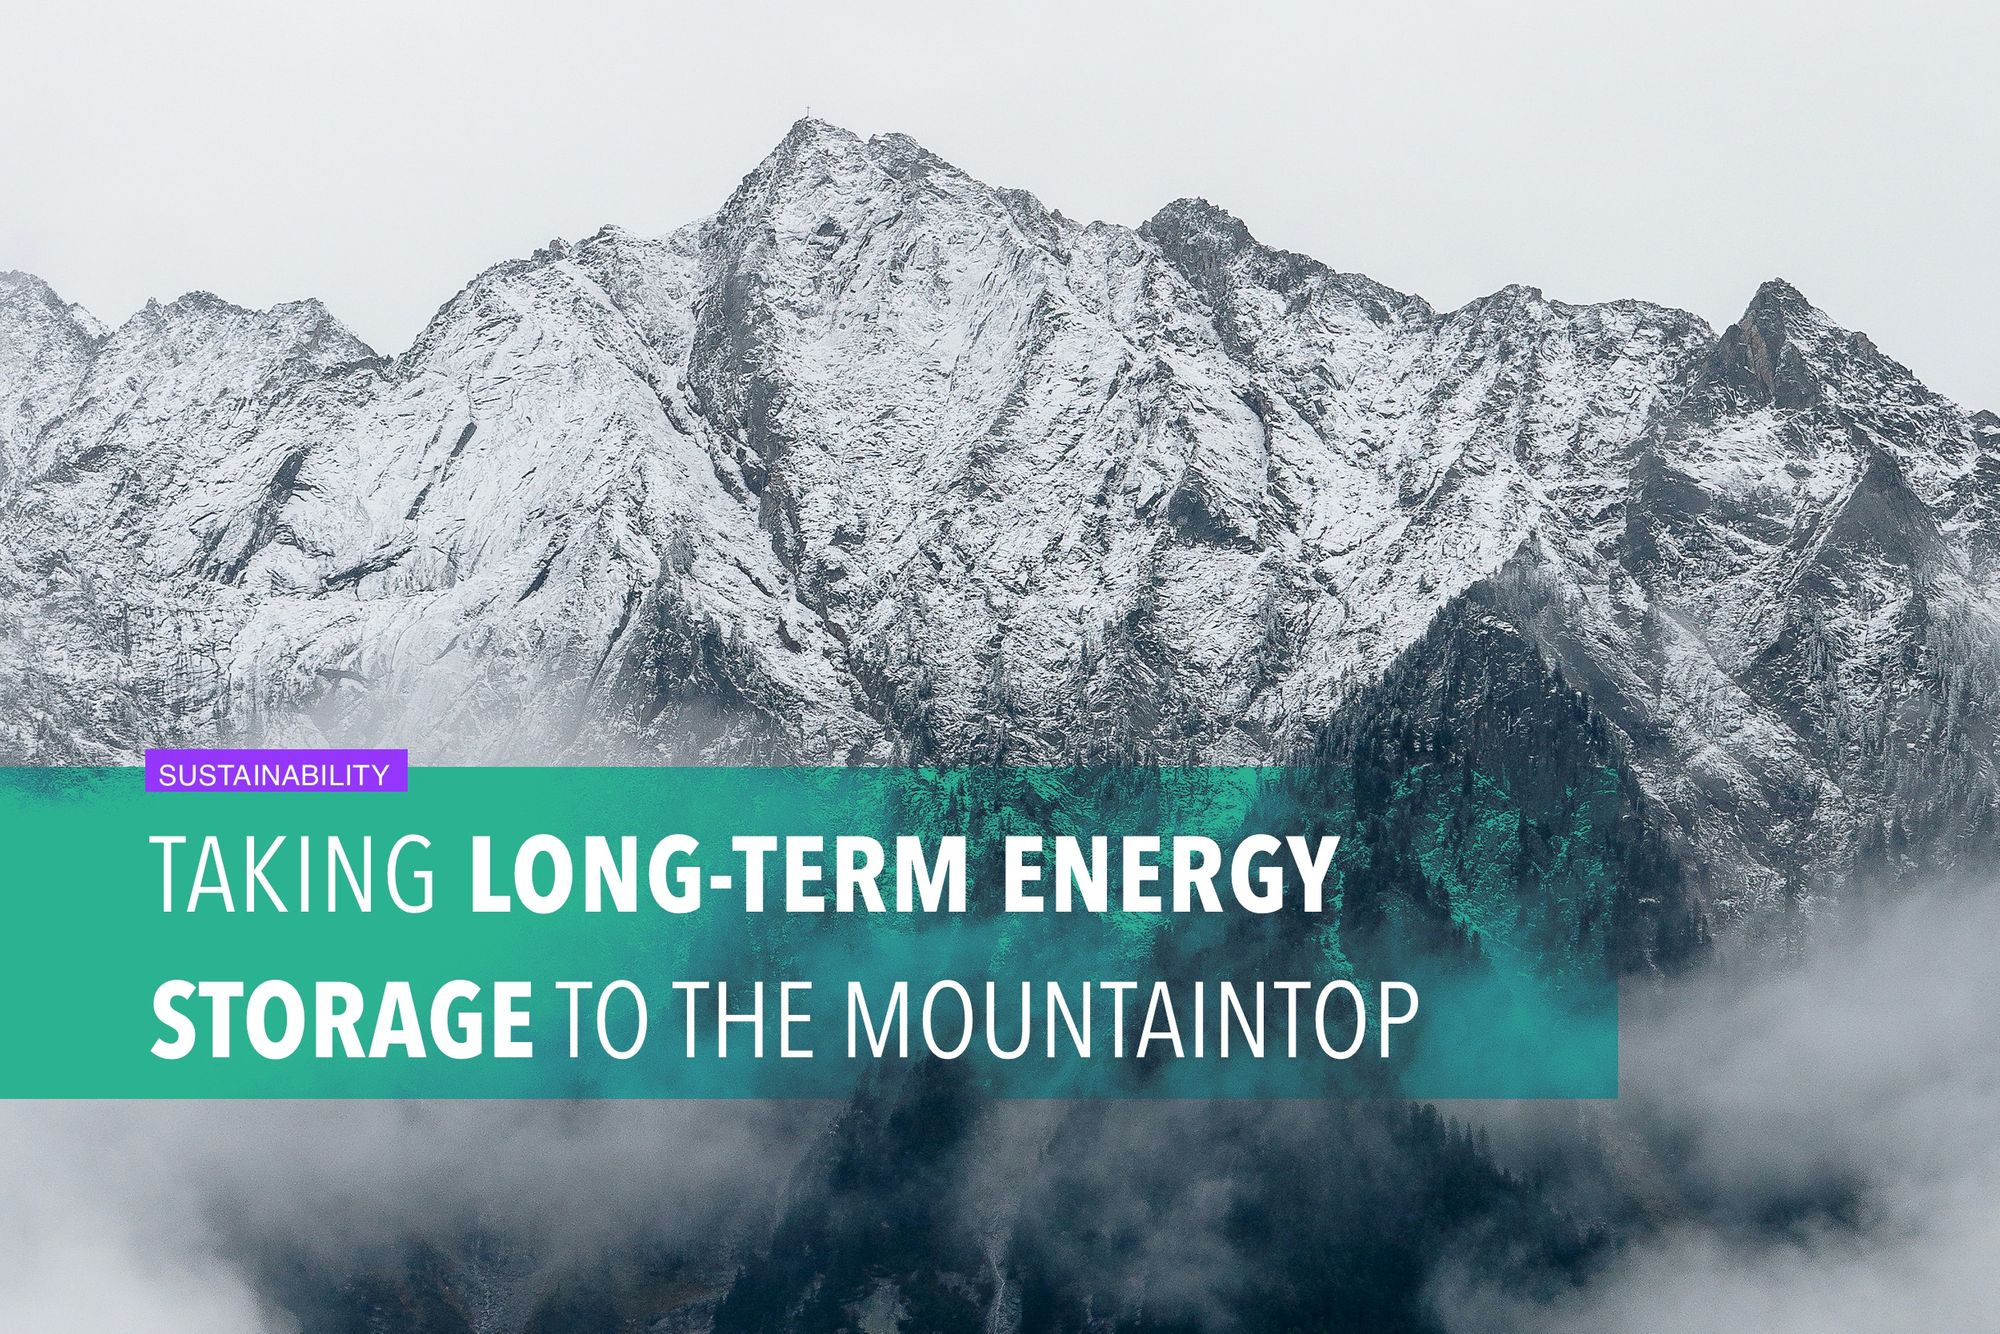 Taking long-term energy storage to the mountaintop